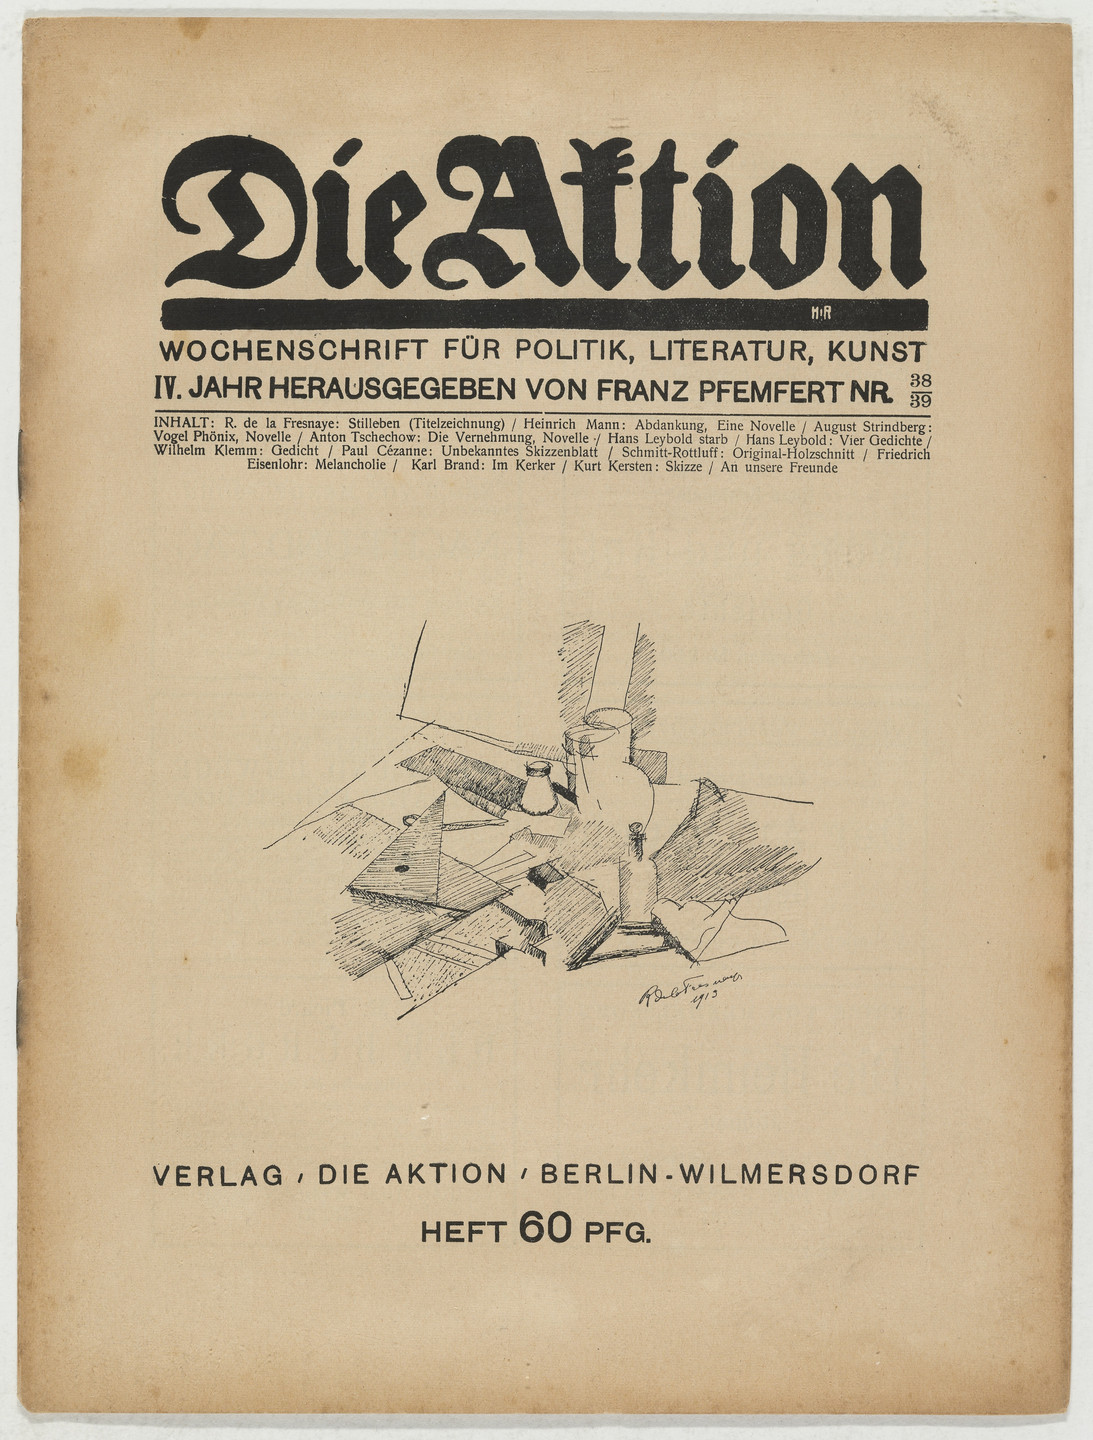 Karl Schmidt-Rottluff. Die Aktion, vol. 4, no. 38/39. September 26, 1914